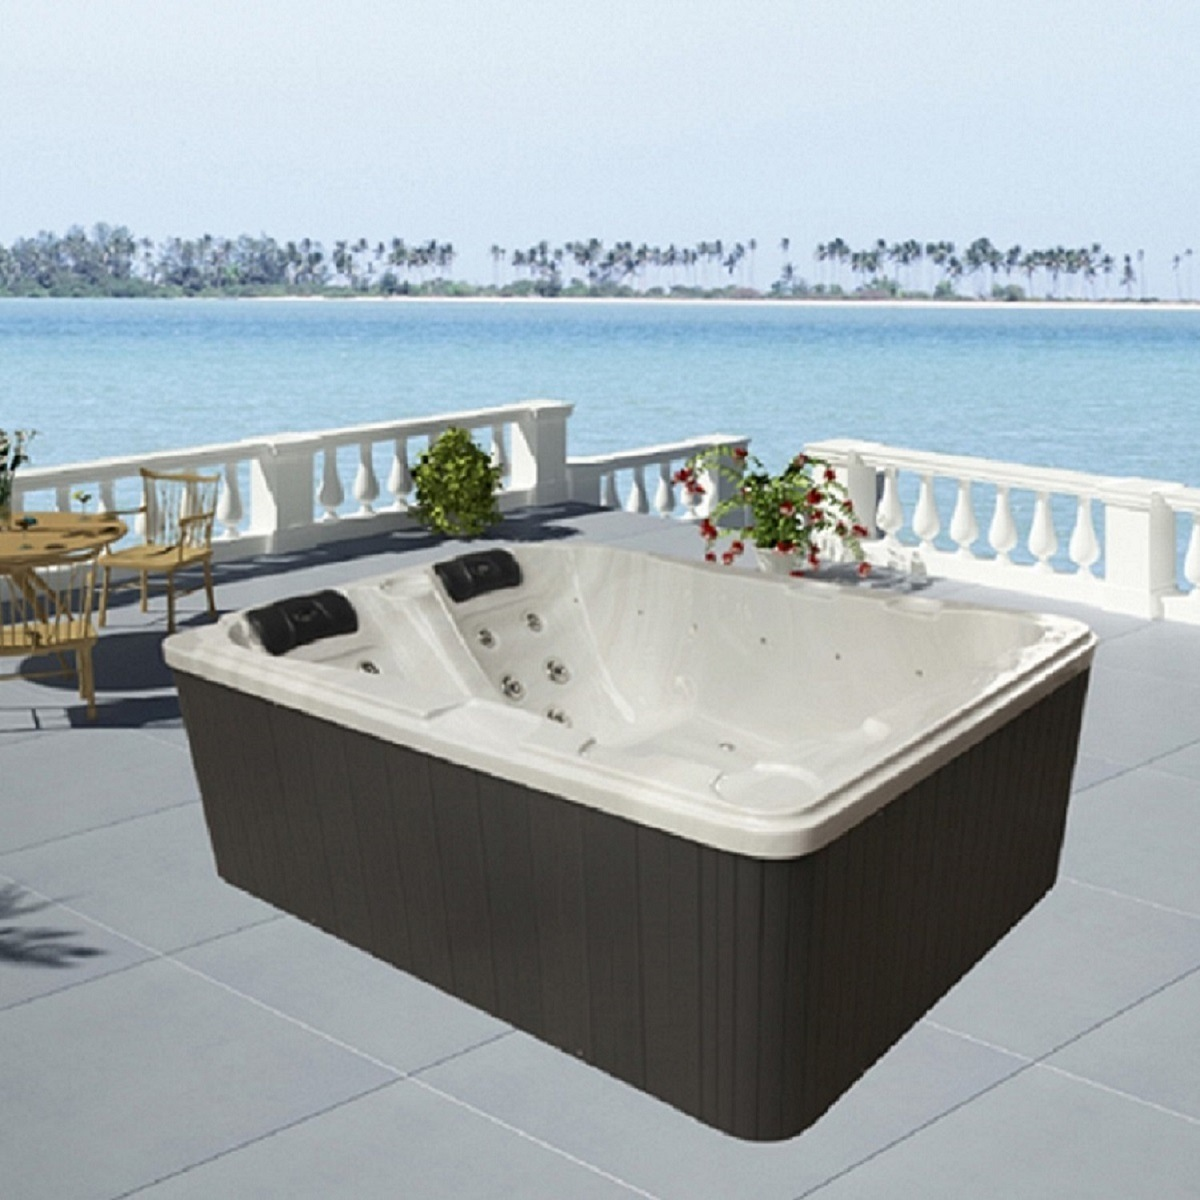 China Monalisa Hot Tub with Outdoor Whirlpool SPA Function M-3371 ...